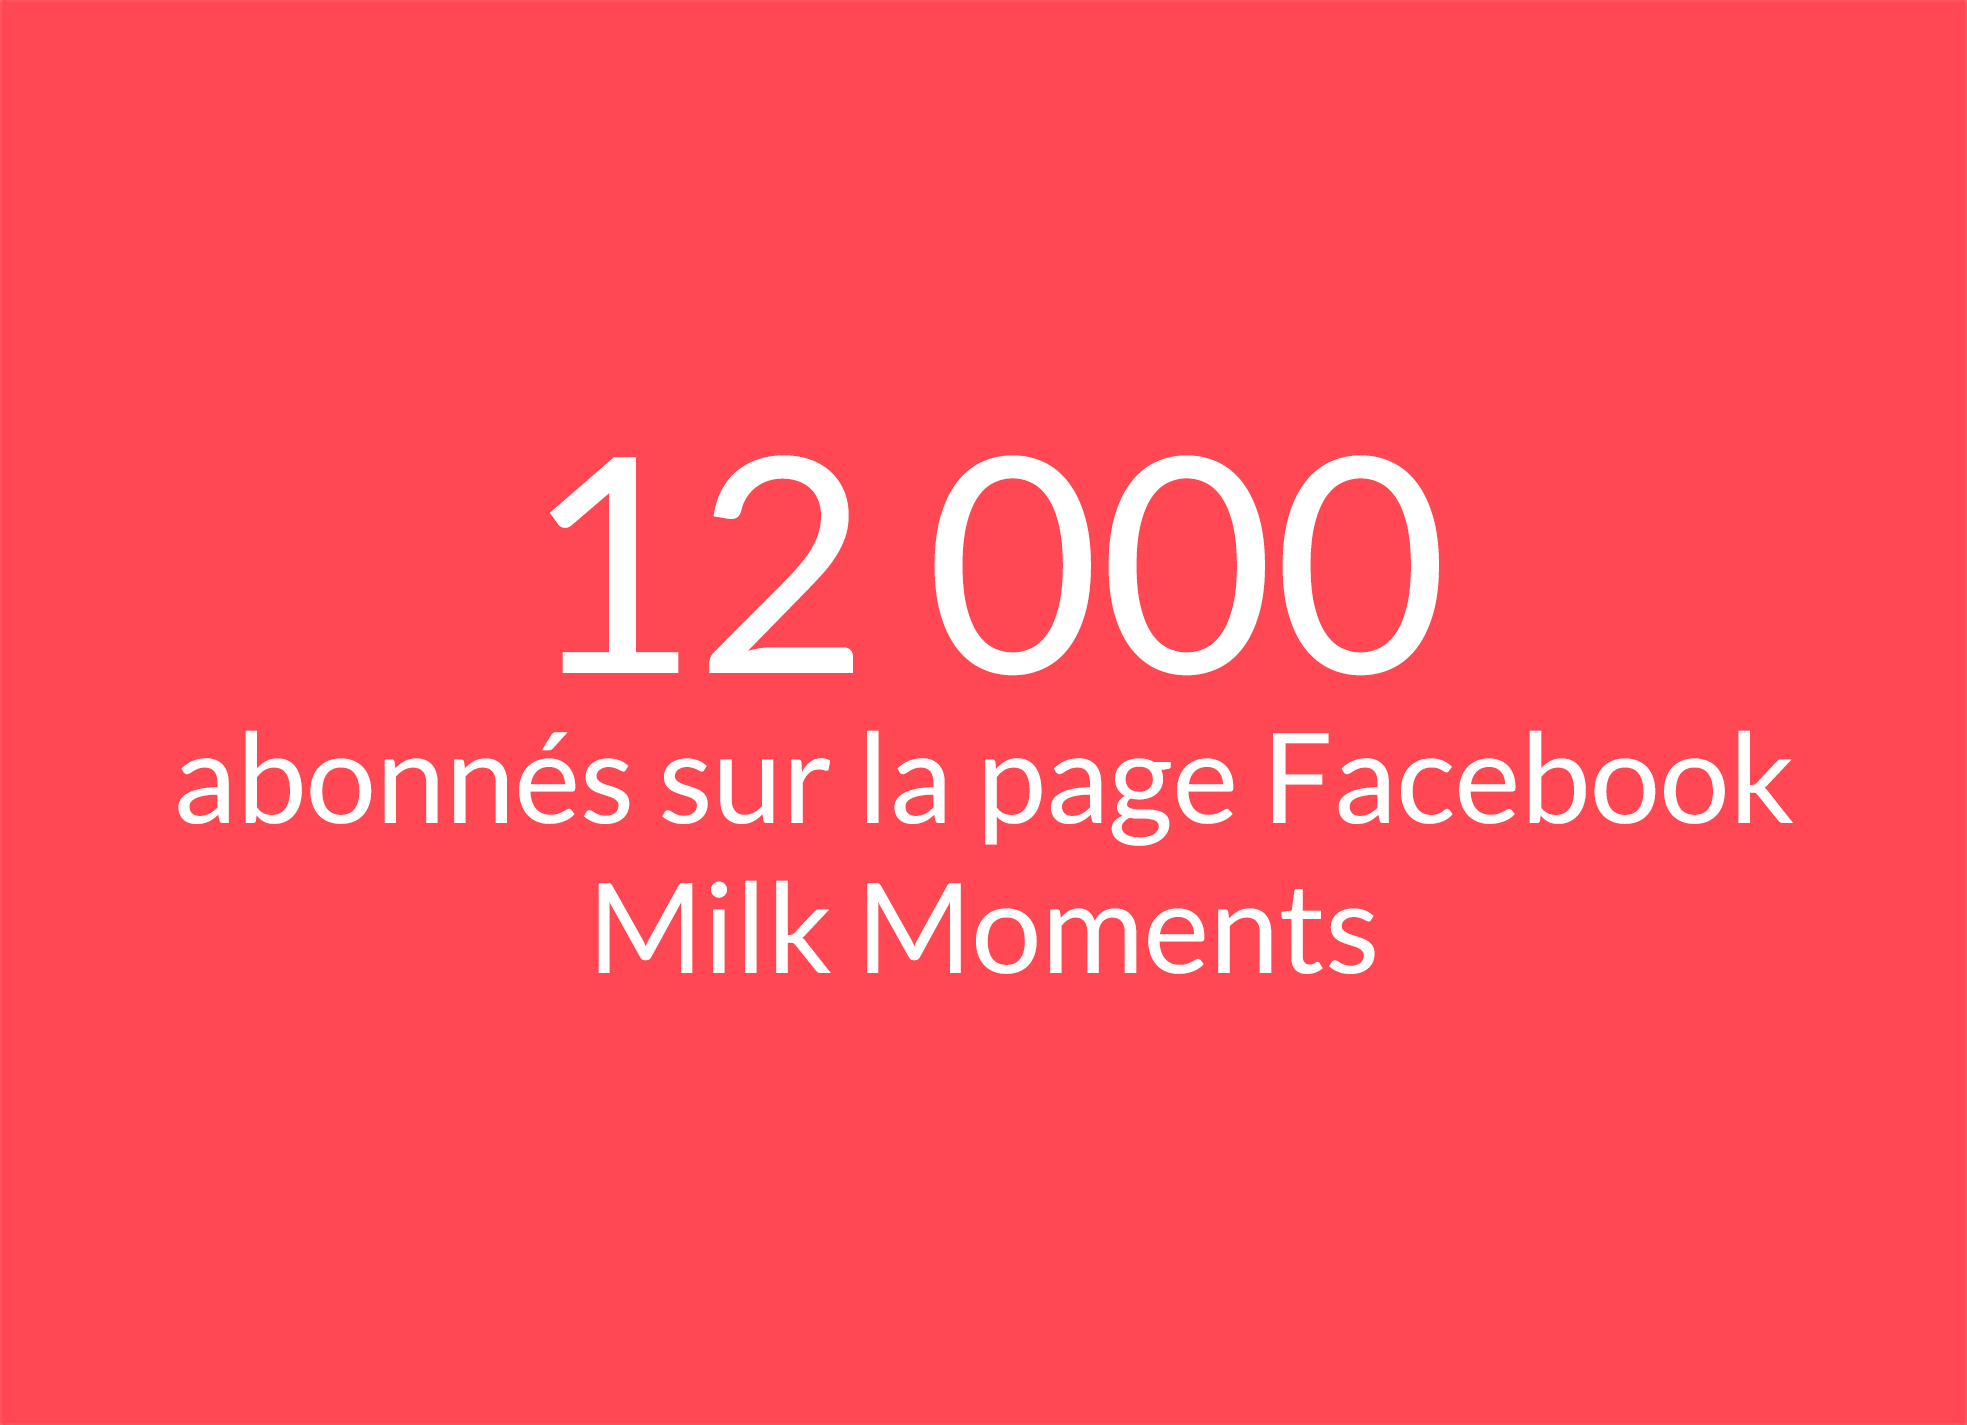 Texte : 12 000 abonnés sur la page Facebook Milk Moments